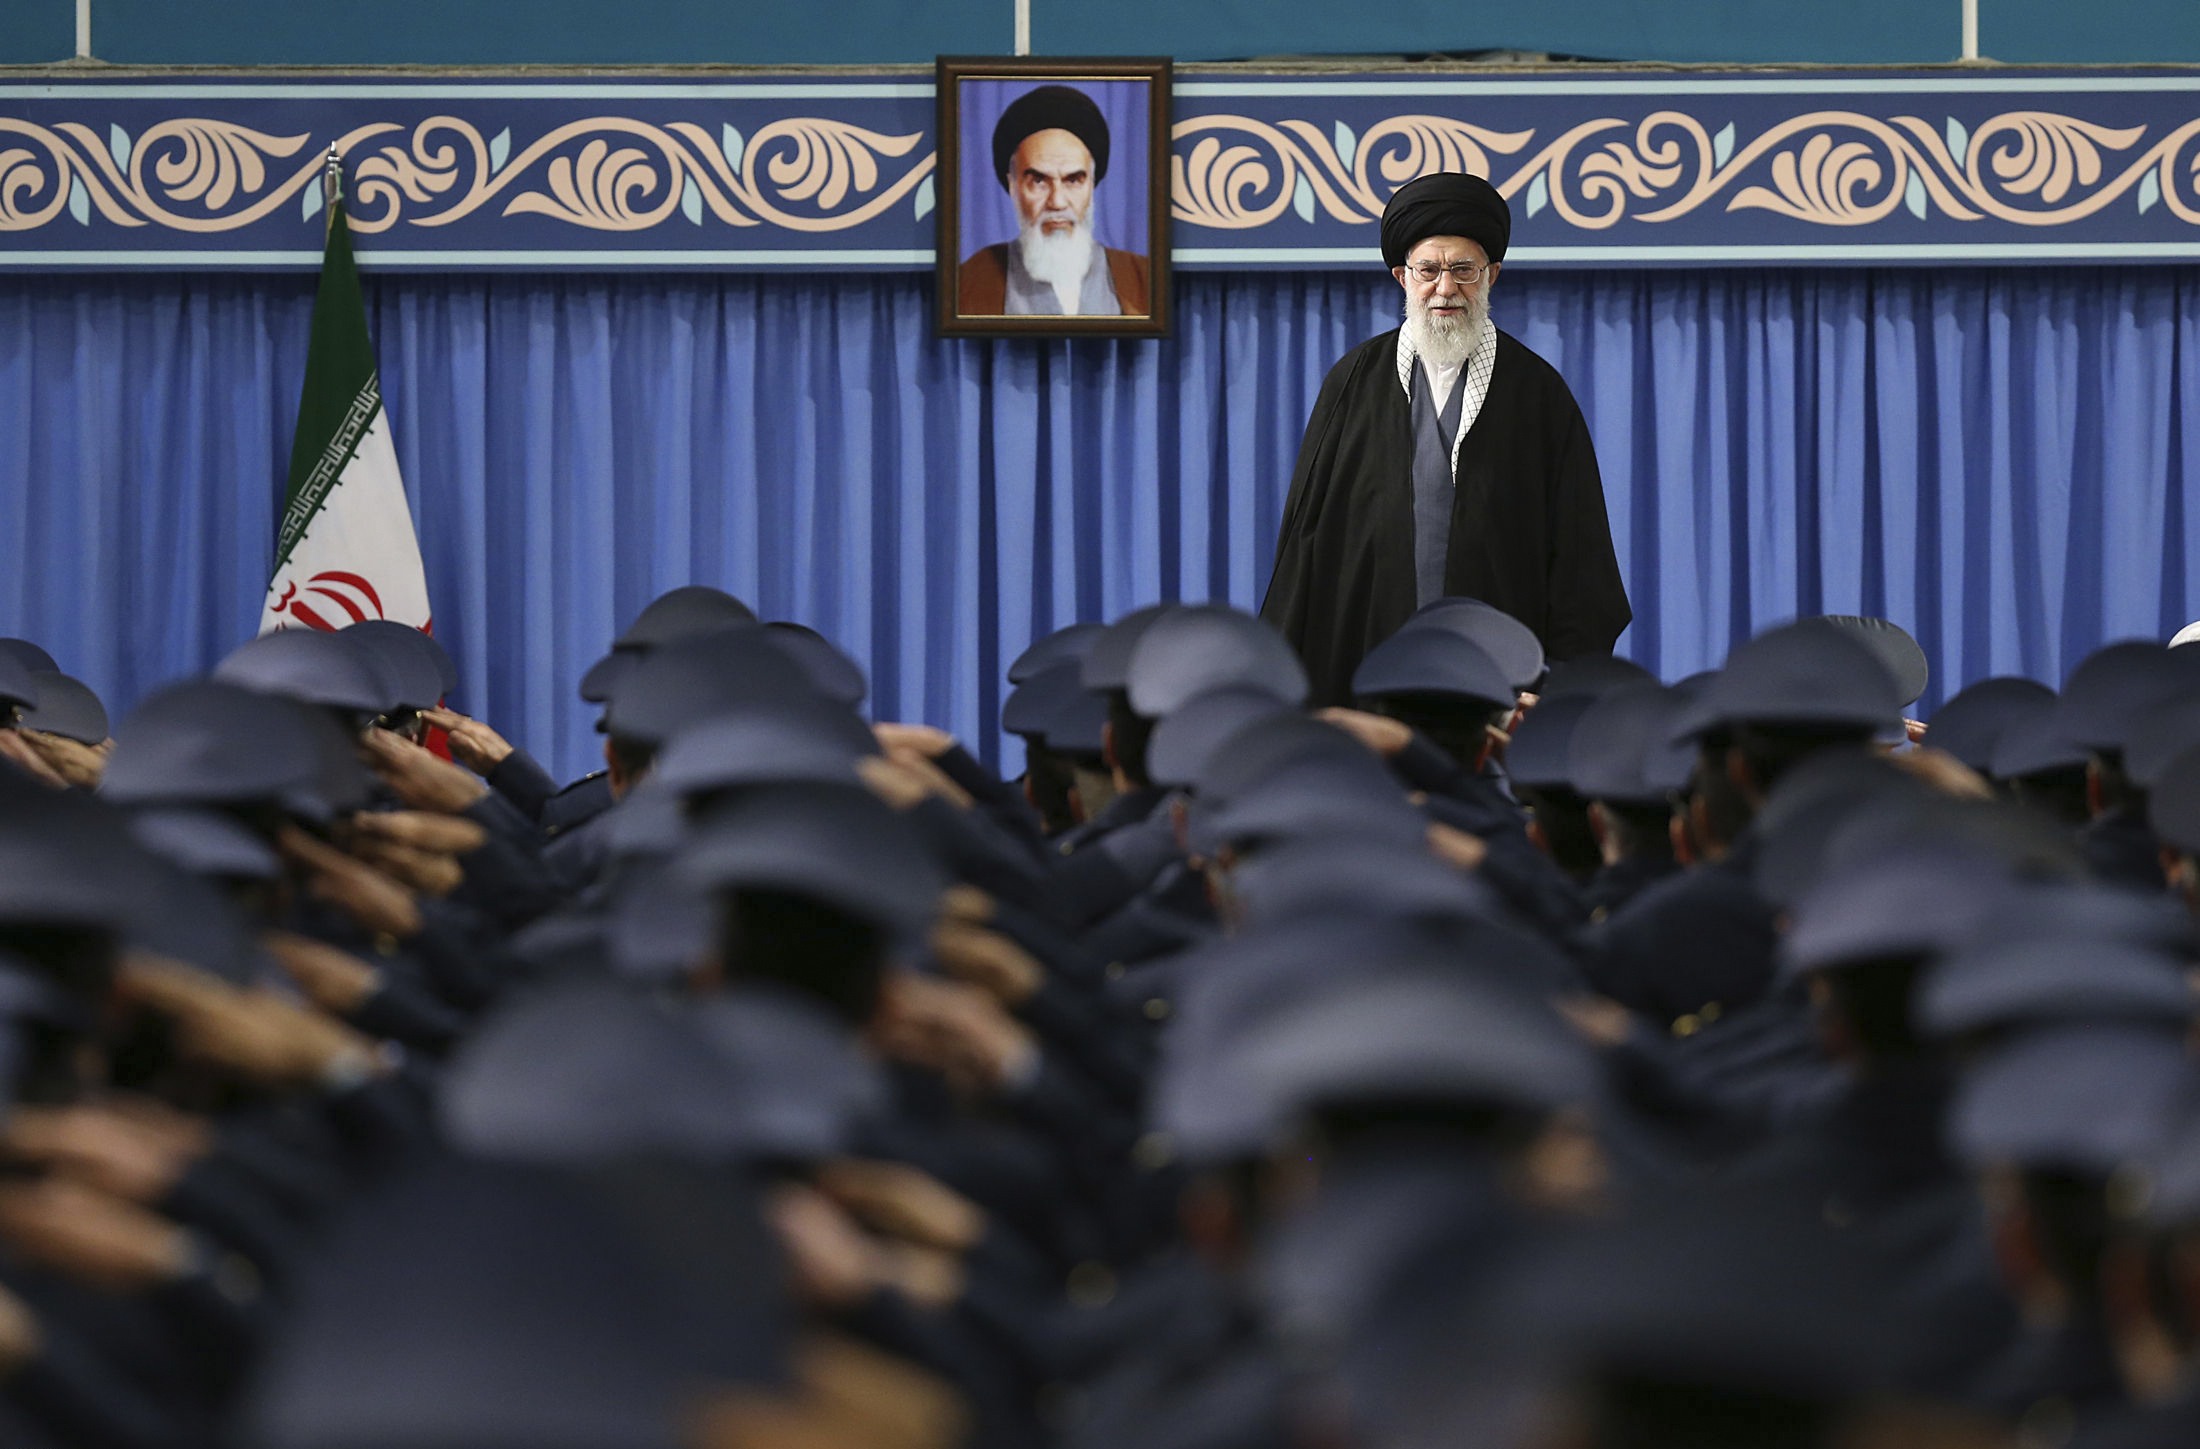 Iranian Supreme Leader Ayatollah Ali Khamenei stands as army air force and air defense staff salute at the start of their meeting in Tehran, Iran, Feb. 8, 2018. (Office of the Iranian Supreme Leader via AP)